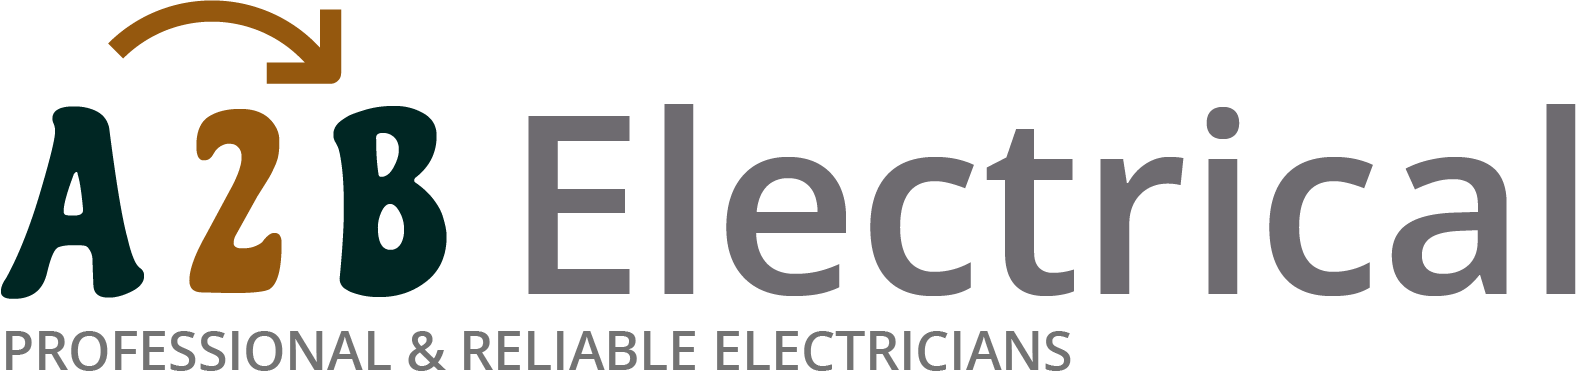 If you have electrical wiring problems in Upper Norwood, we can provide an electrician to have a look for you.